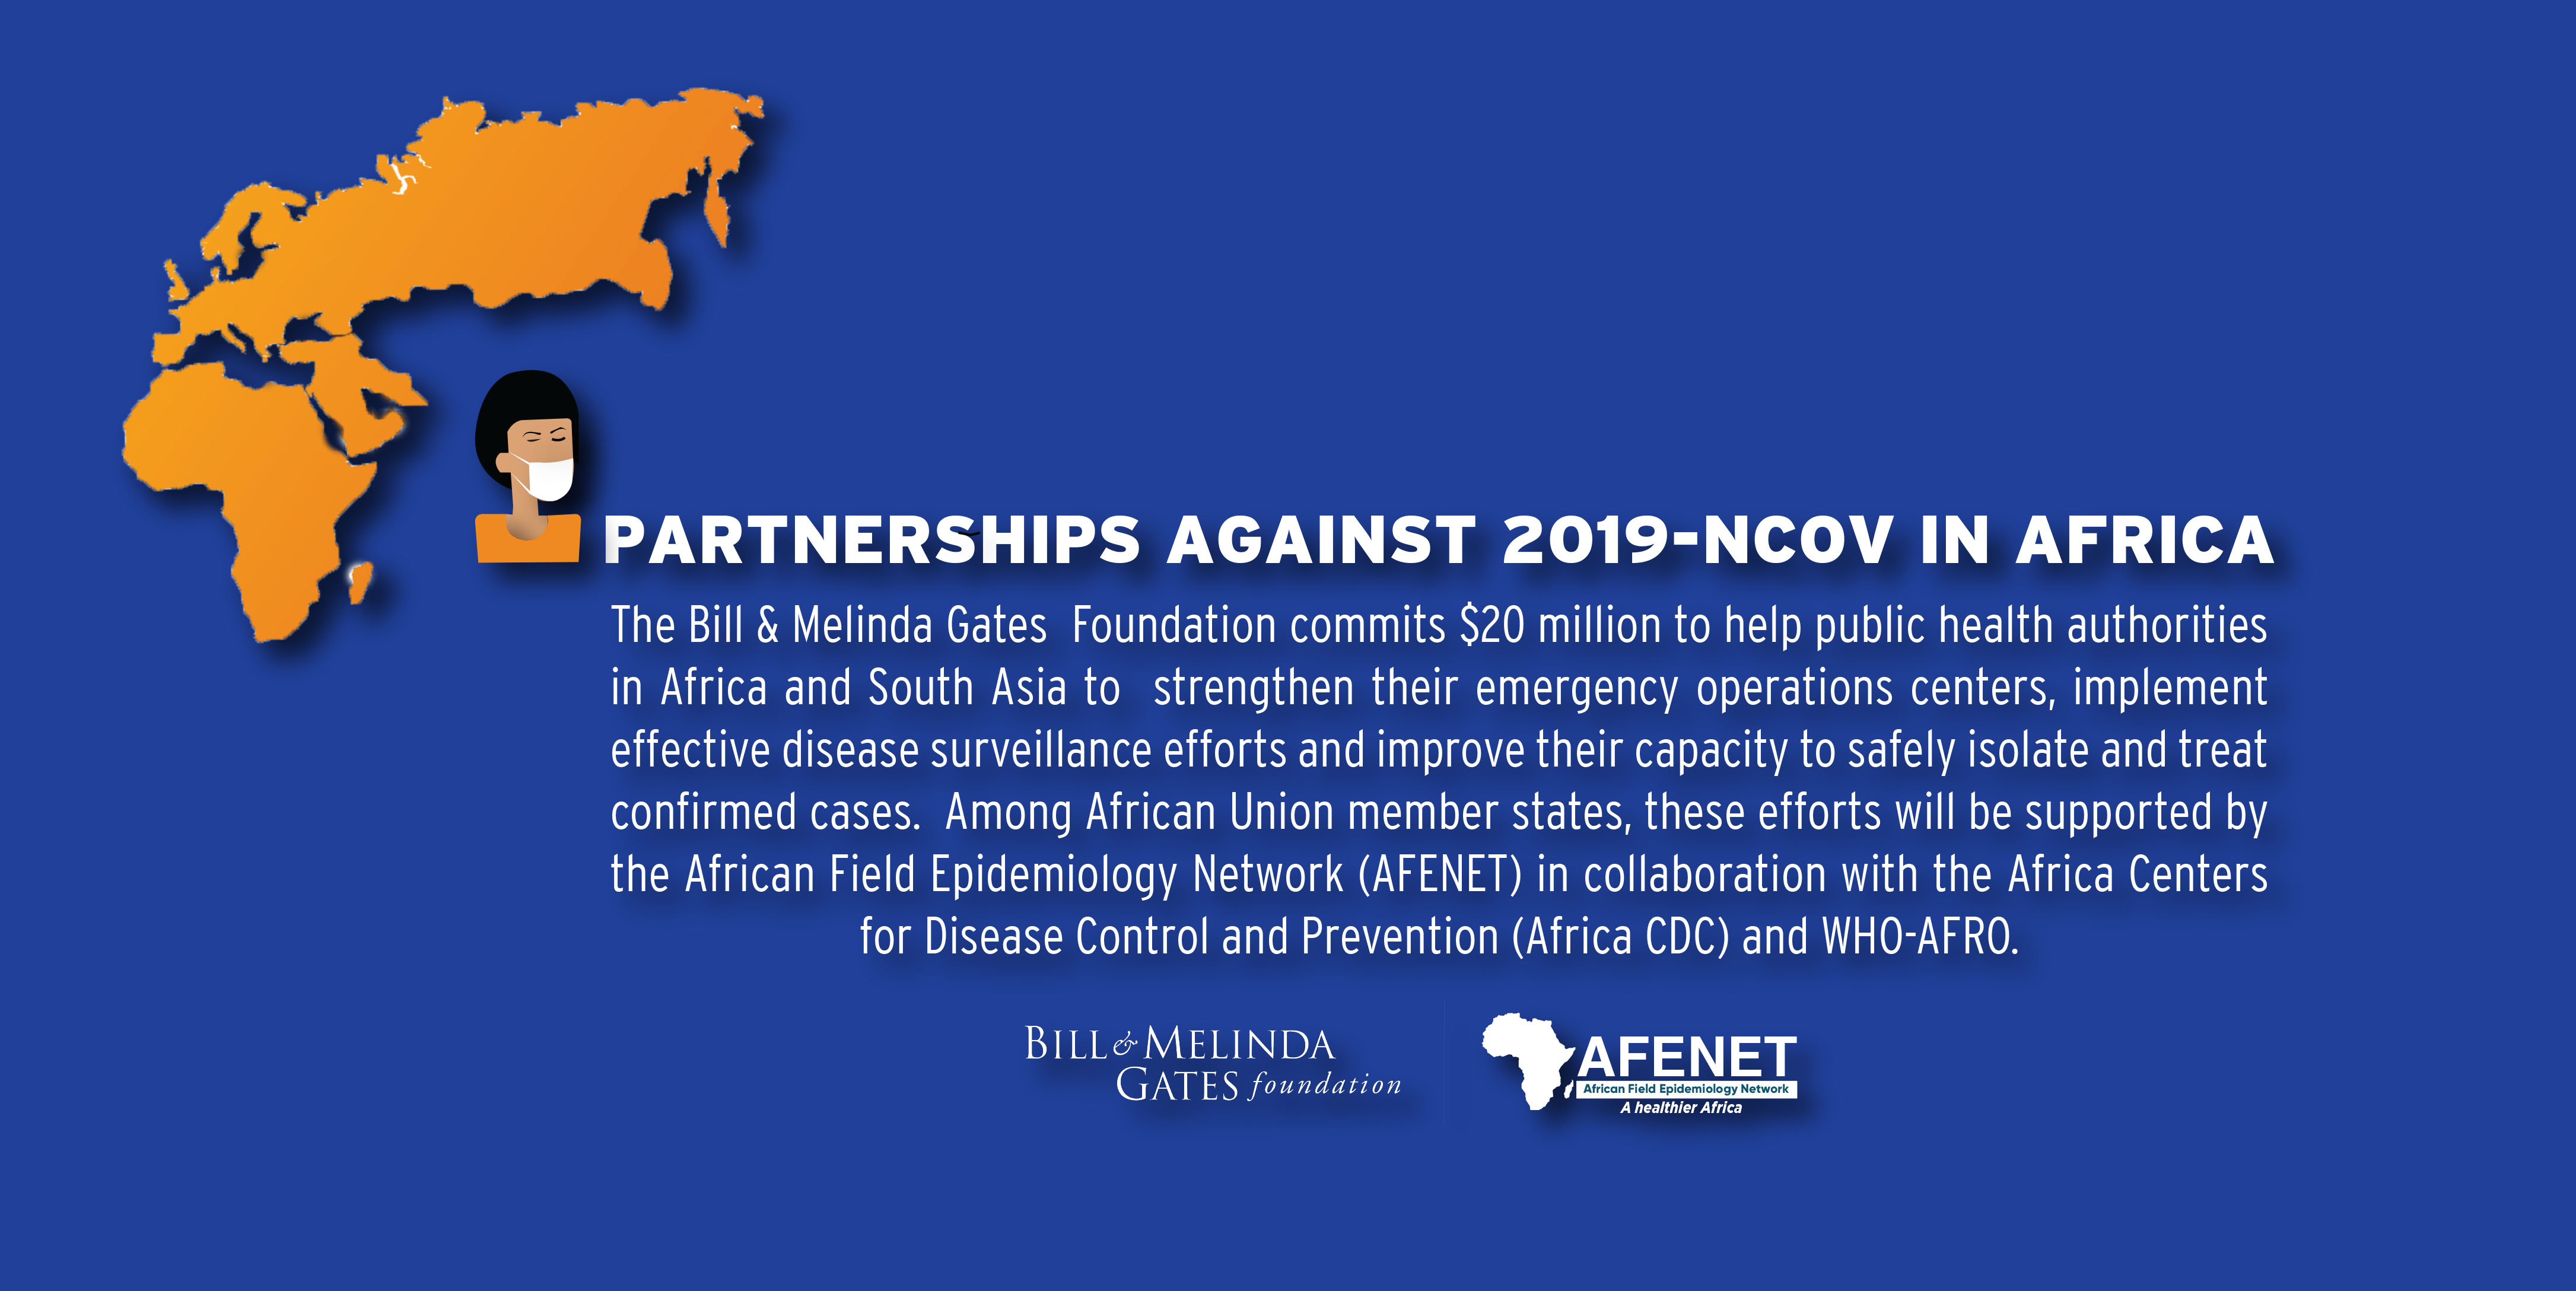 Partnership Against 2019-nCoV in Africa